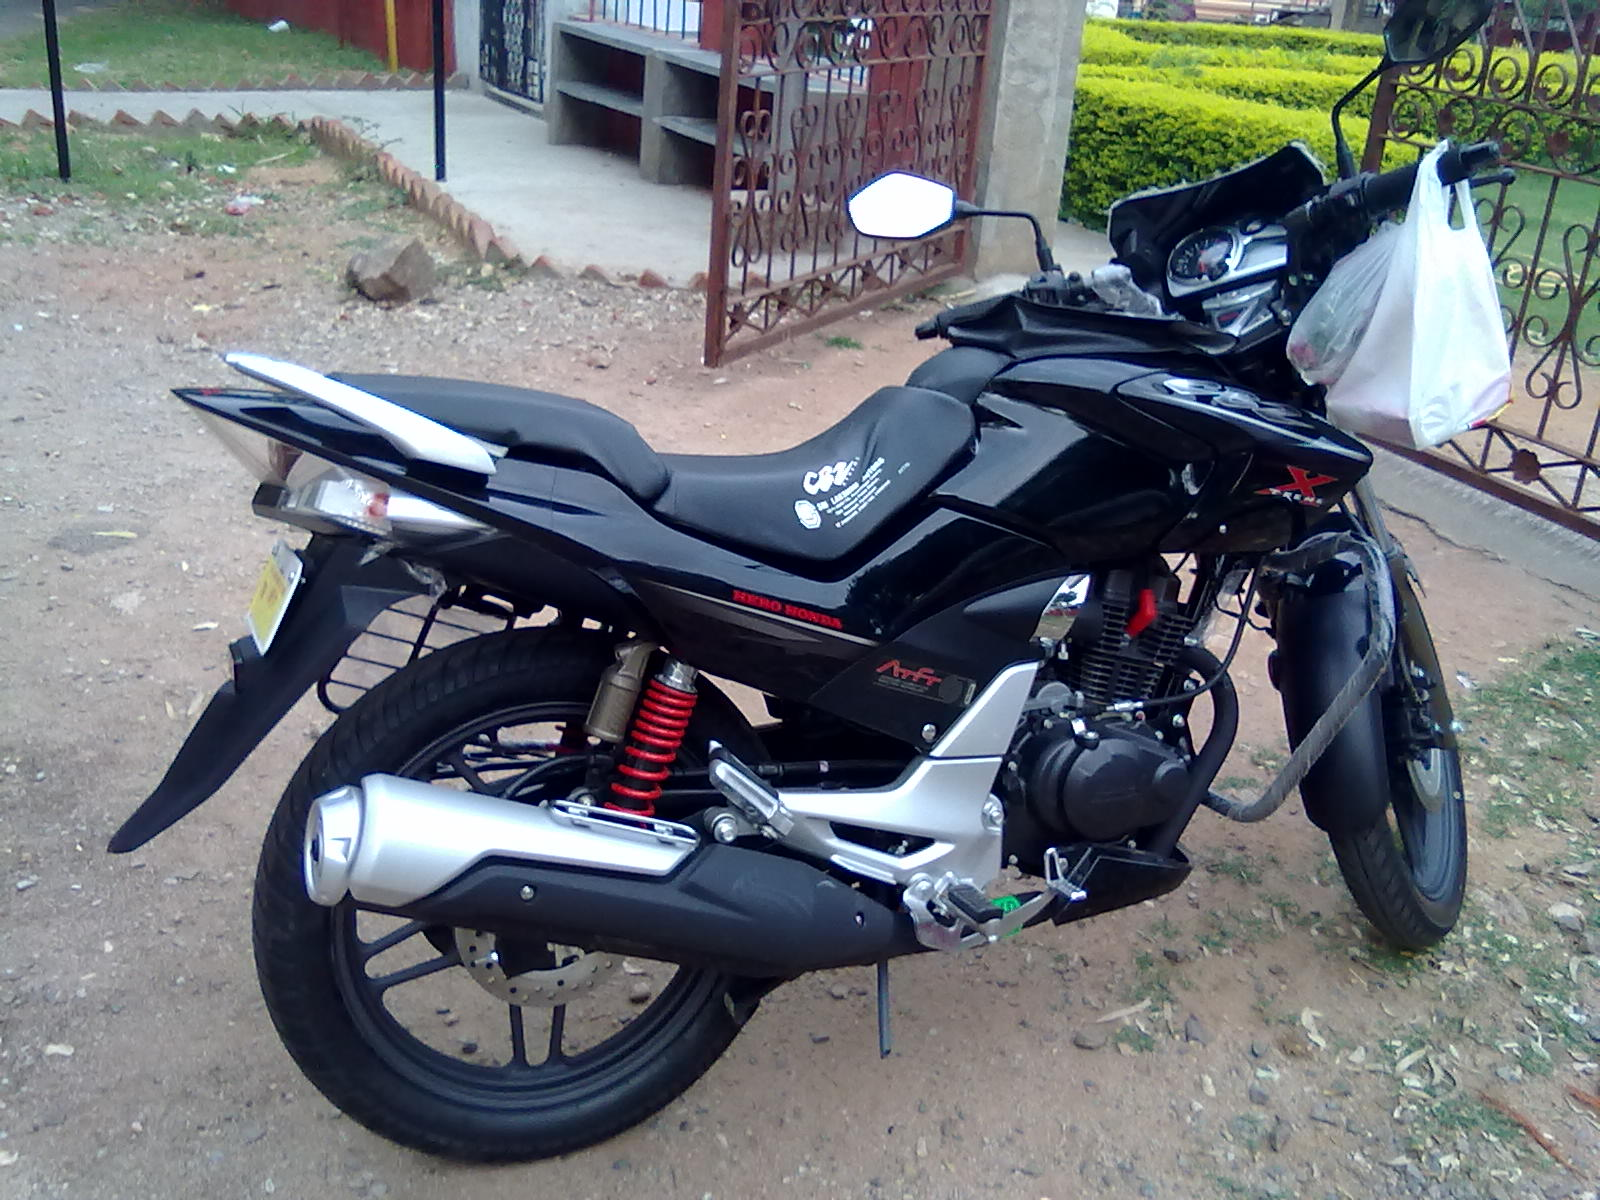 Hero Honda Cbz Xtreme Review Price Model Types Stores Brands India My First Bike With